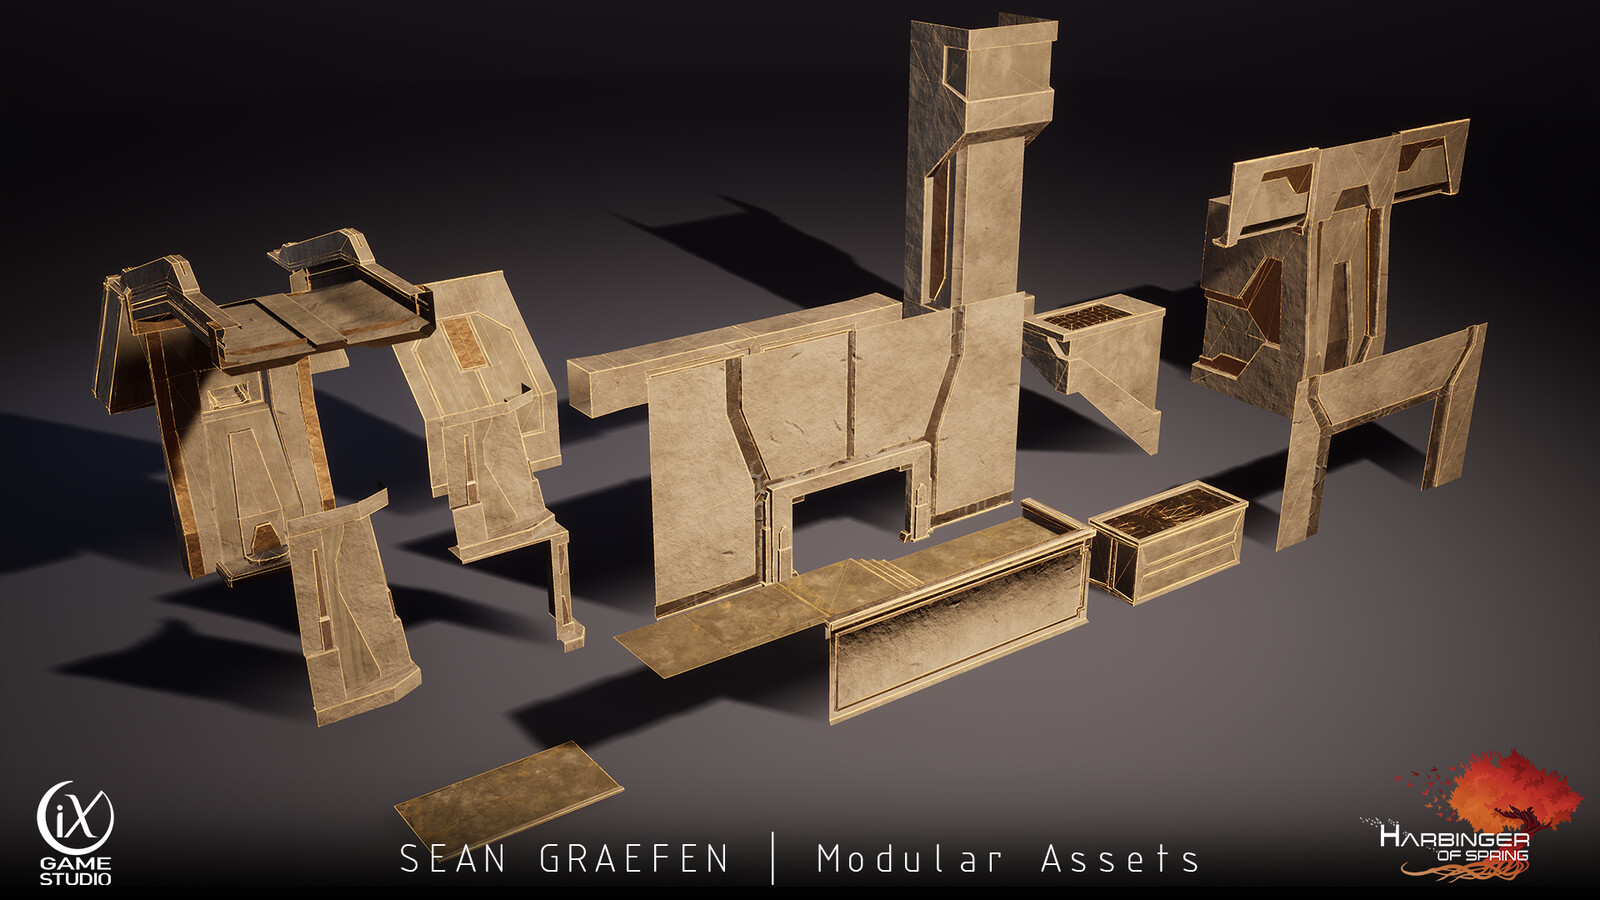 Here's the modular set from the Outlook Room.